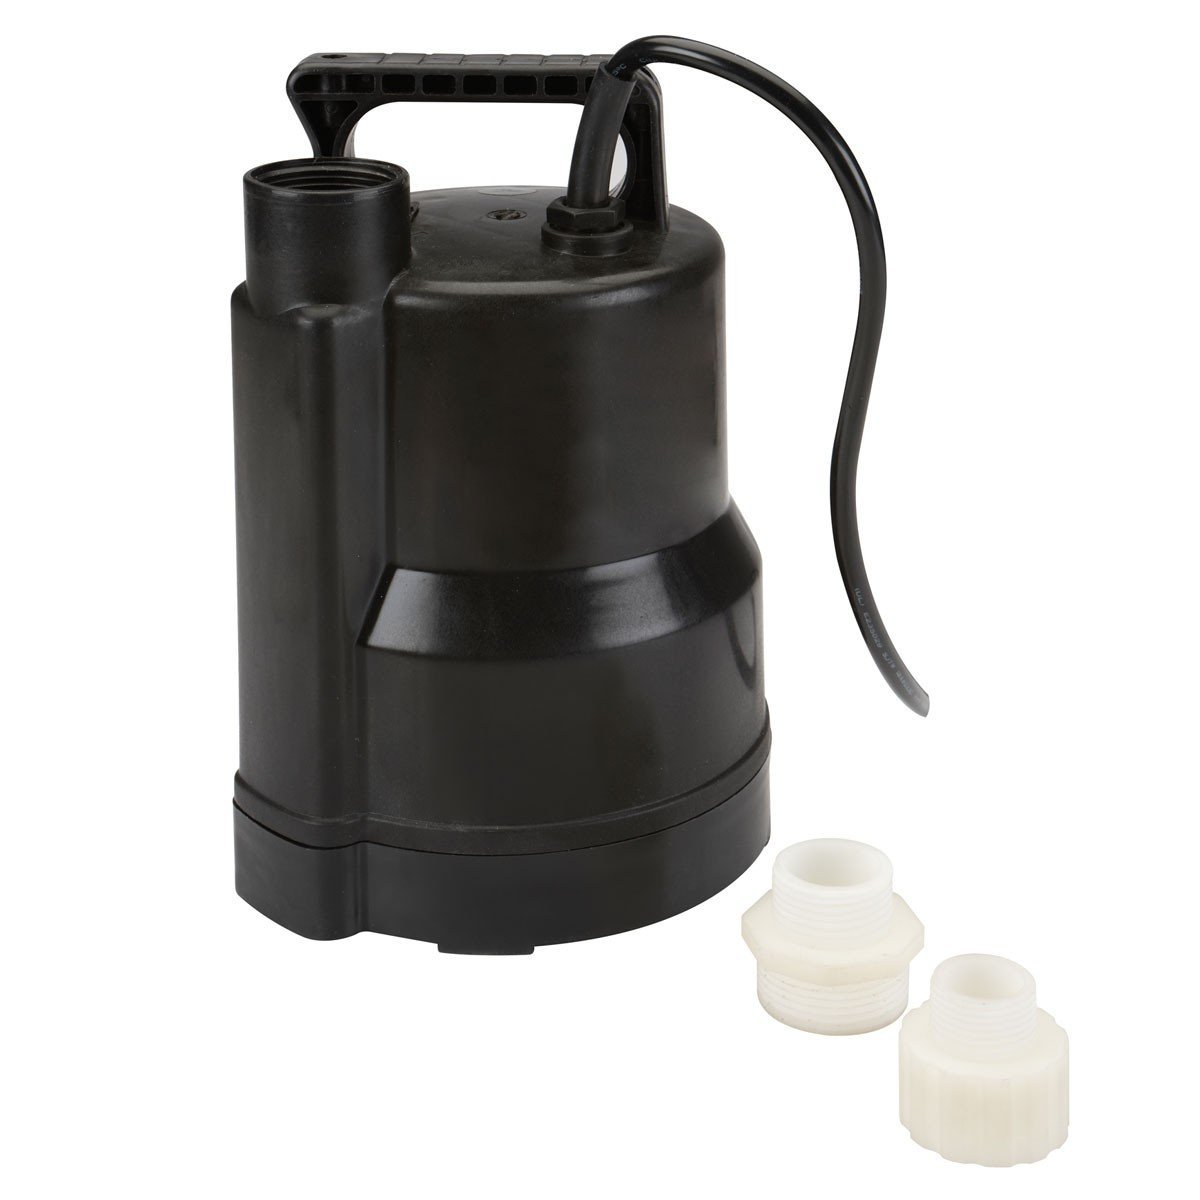 Eco-Flo SUP54 Submersible Pump